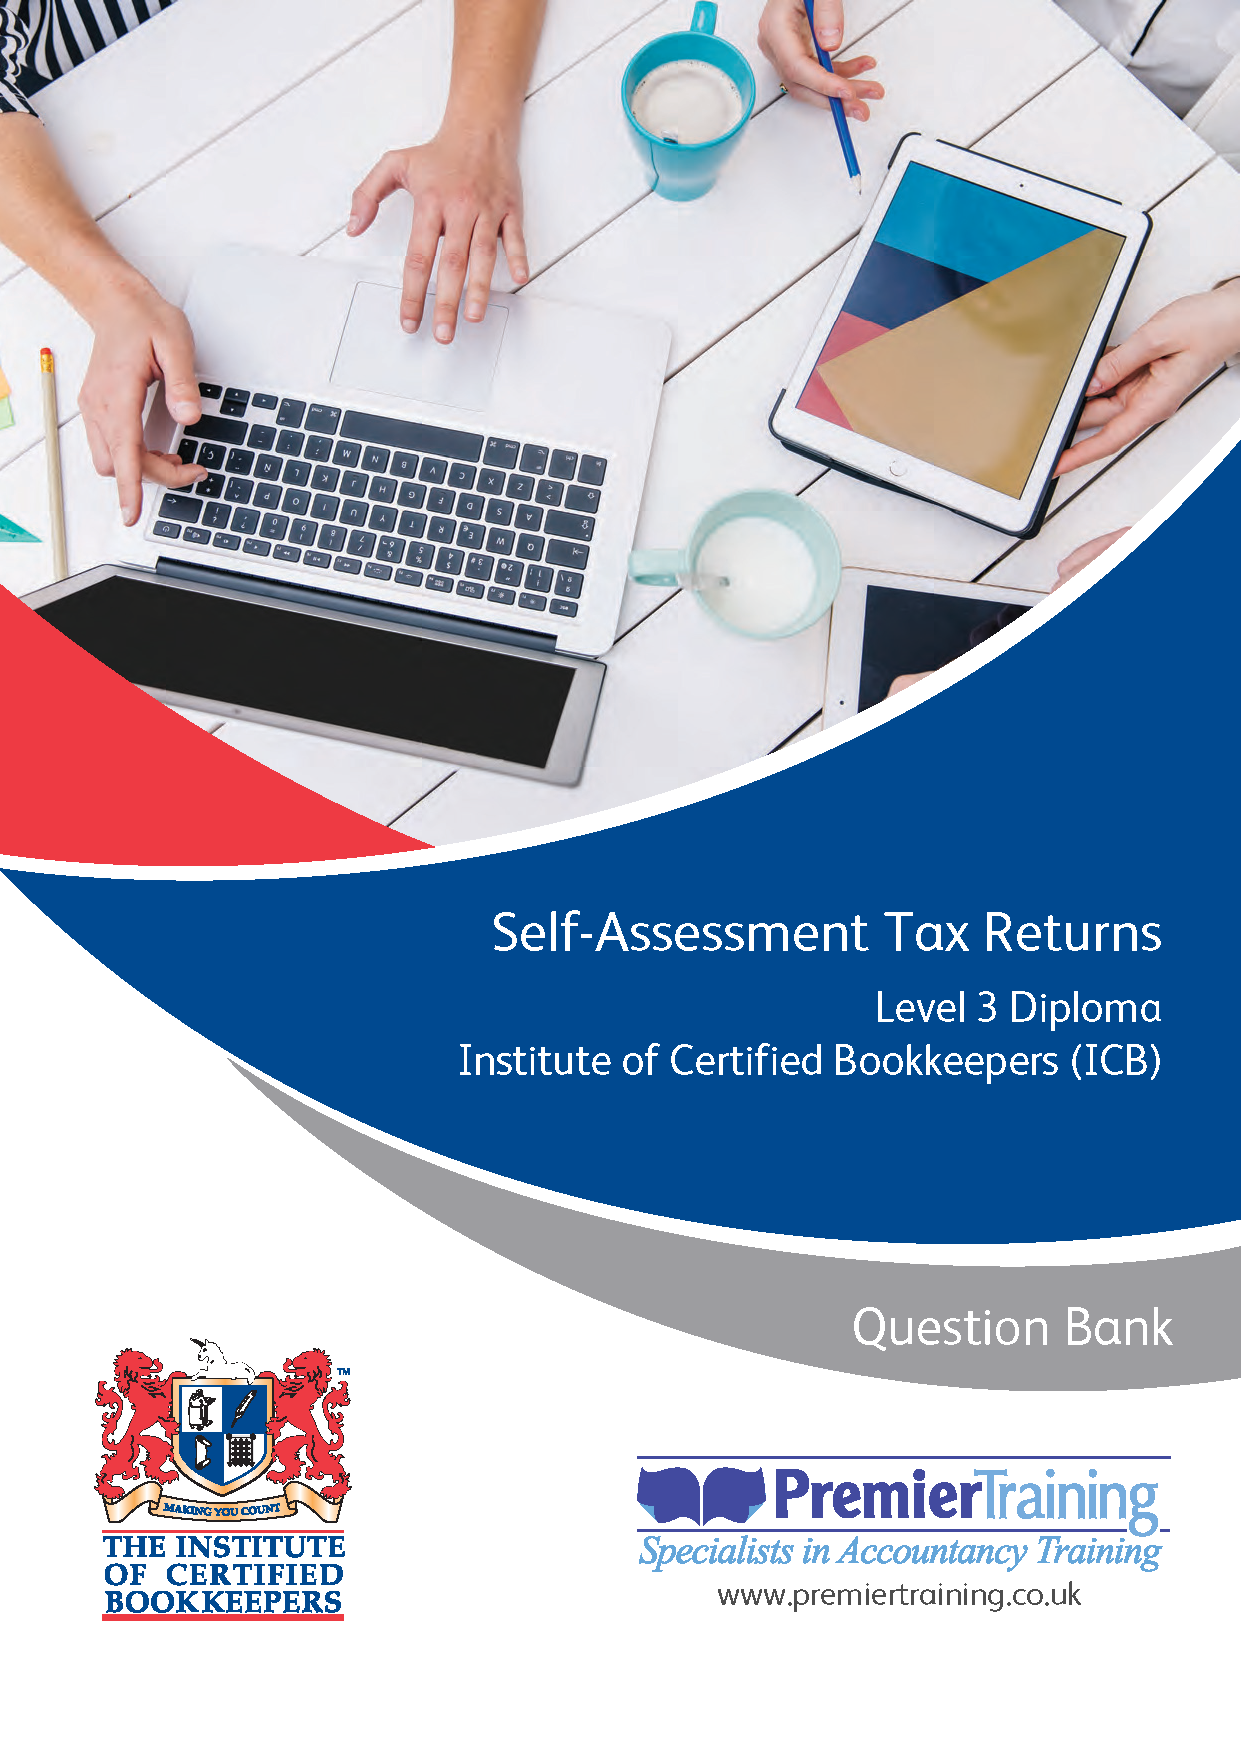 ICB Self-Assessment Tax Returns - Question Bank